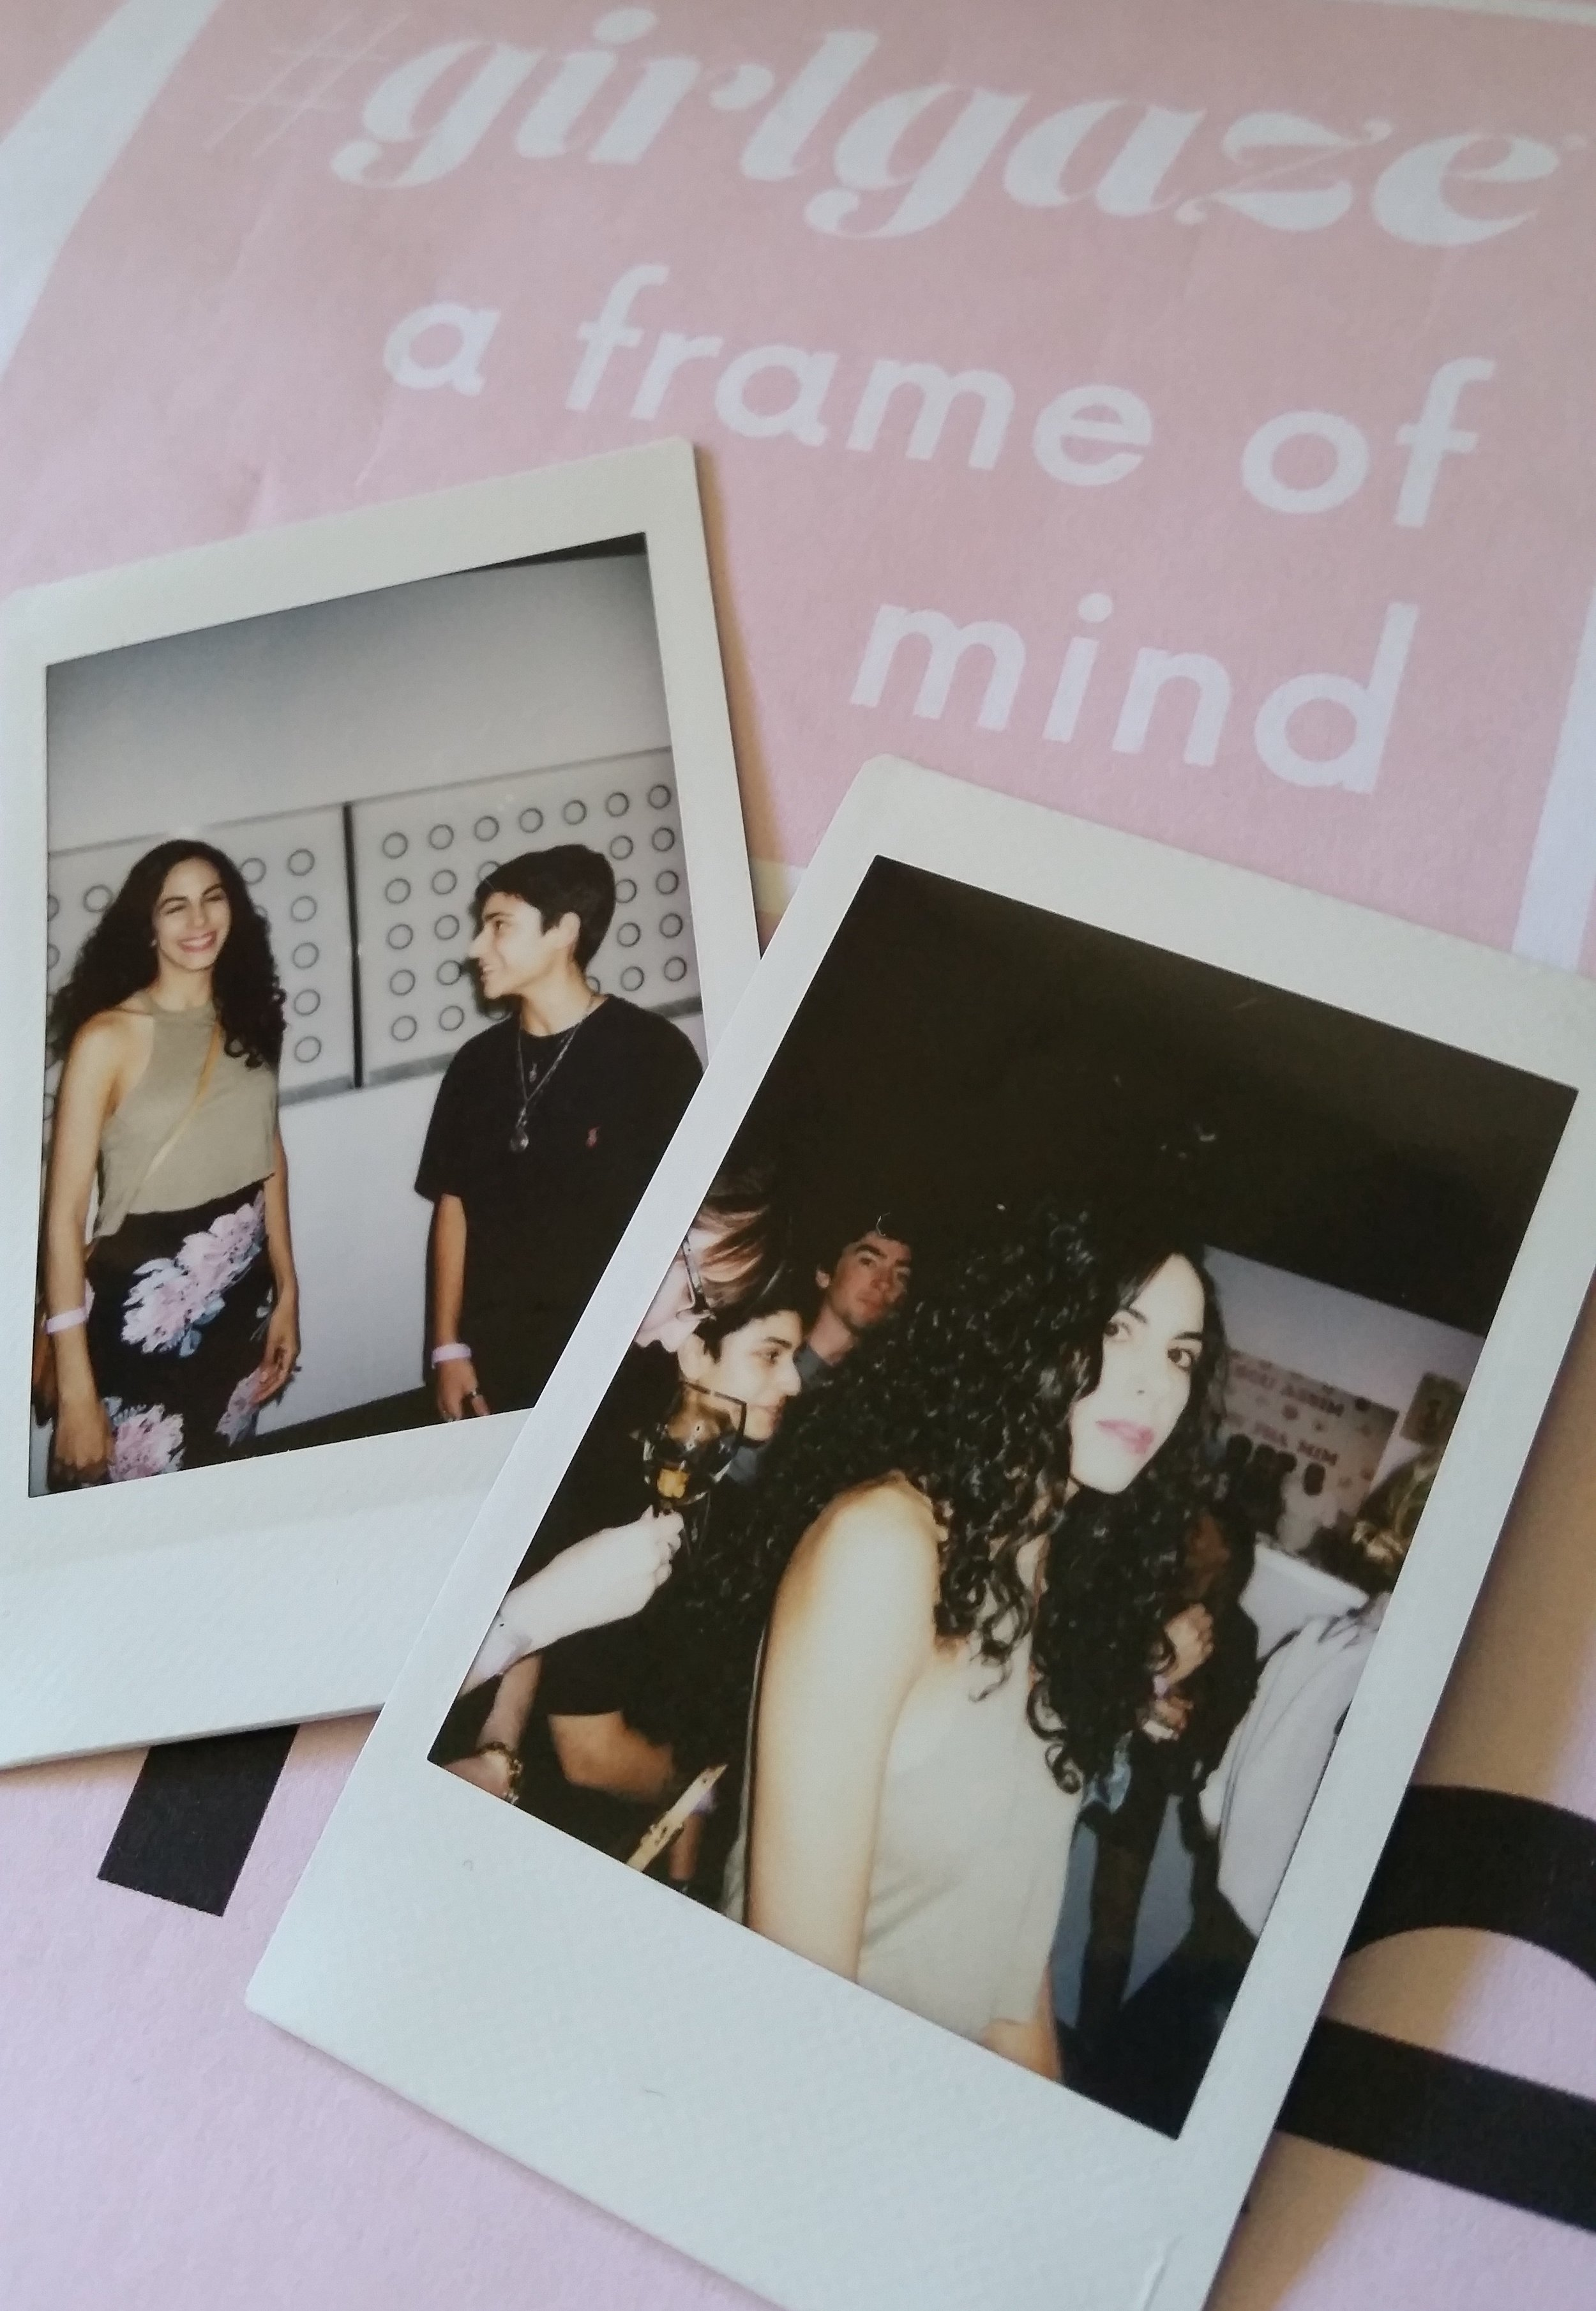 Artist Elyn Kazarian and I at the show. Polaroids by Sabrina Che.